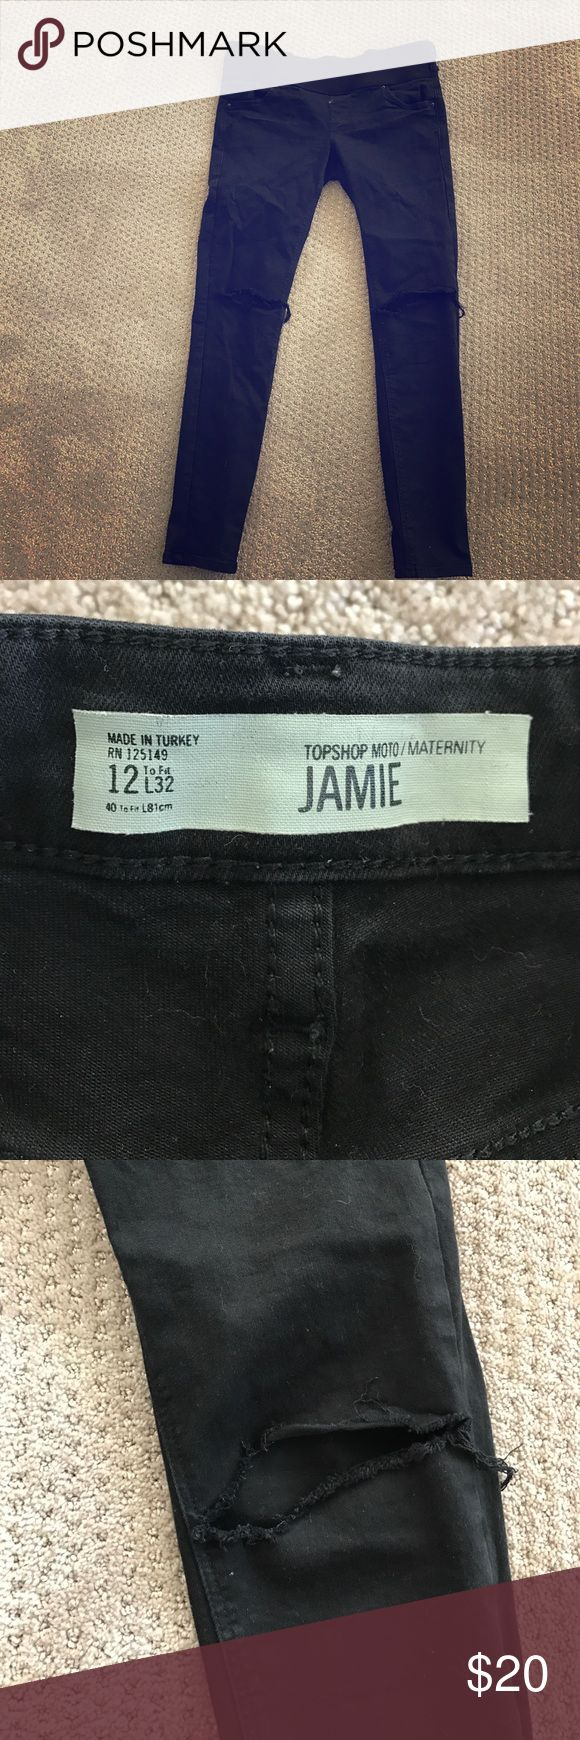 TopShop Maternity Jeans Black TopShop black maternity jeans with soft stretchy waistband. Ripped knees. Jamie style. Size 12 but run large. I would say these would fit an 8-10. Topshop MATERNITY Jeans Skinny